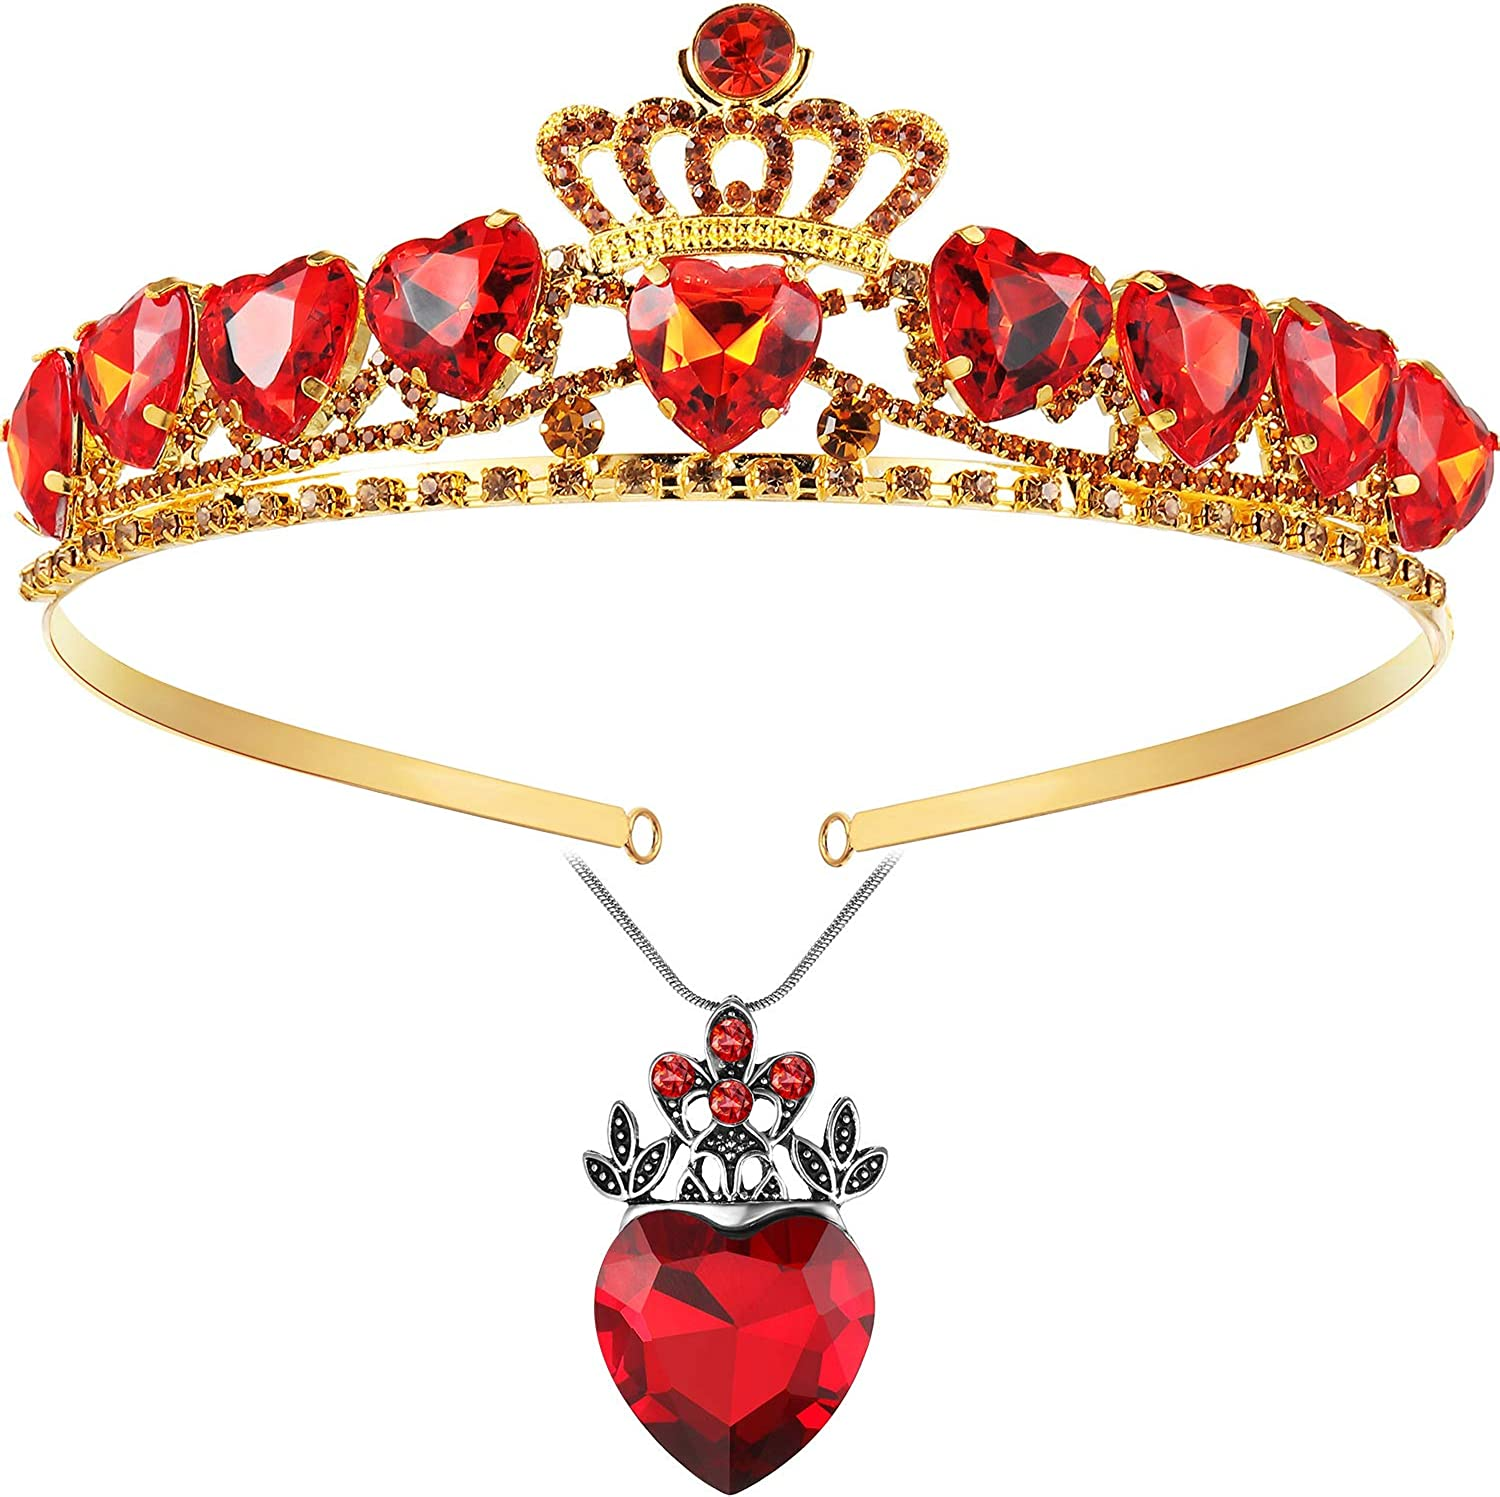 Detroit Omaha Mall Mall Red Heart Necklace and Crown Set Present Day Gir for Valentine's